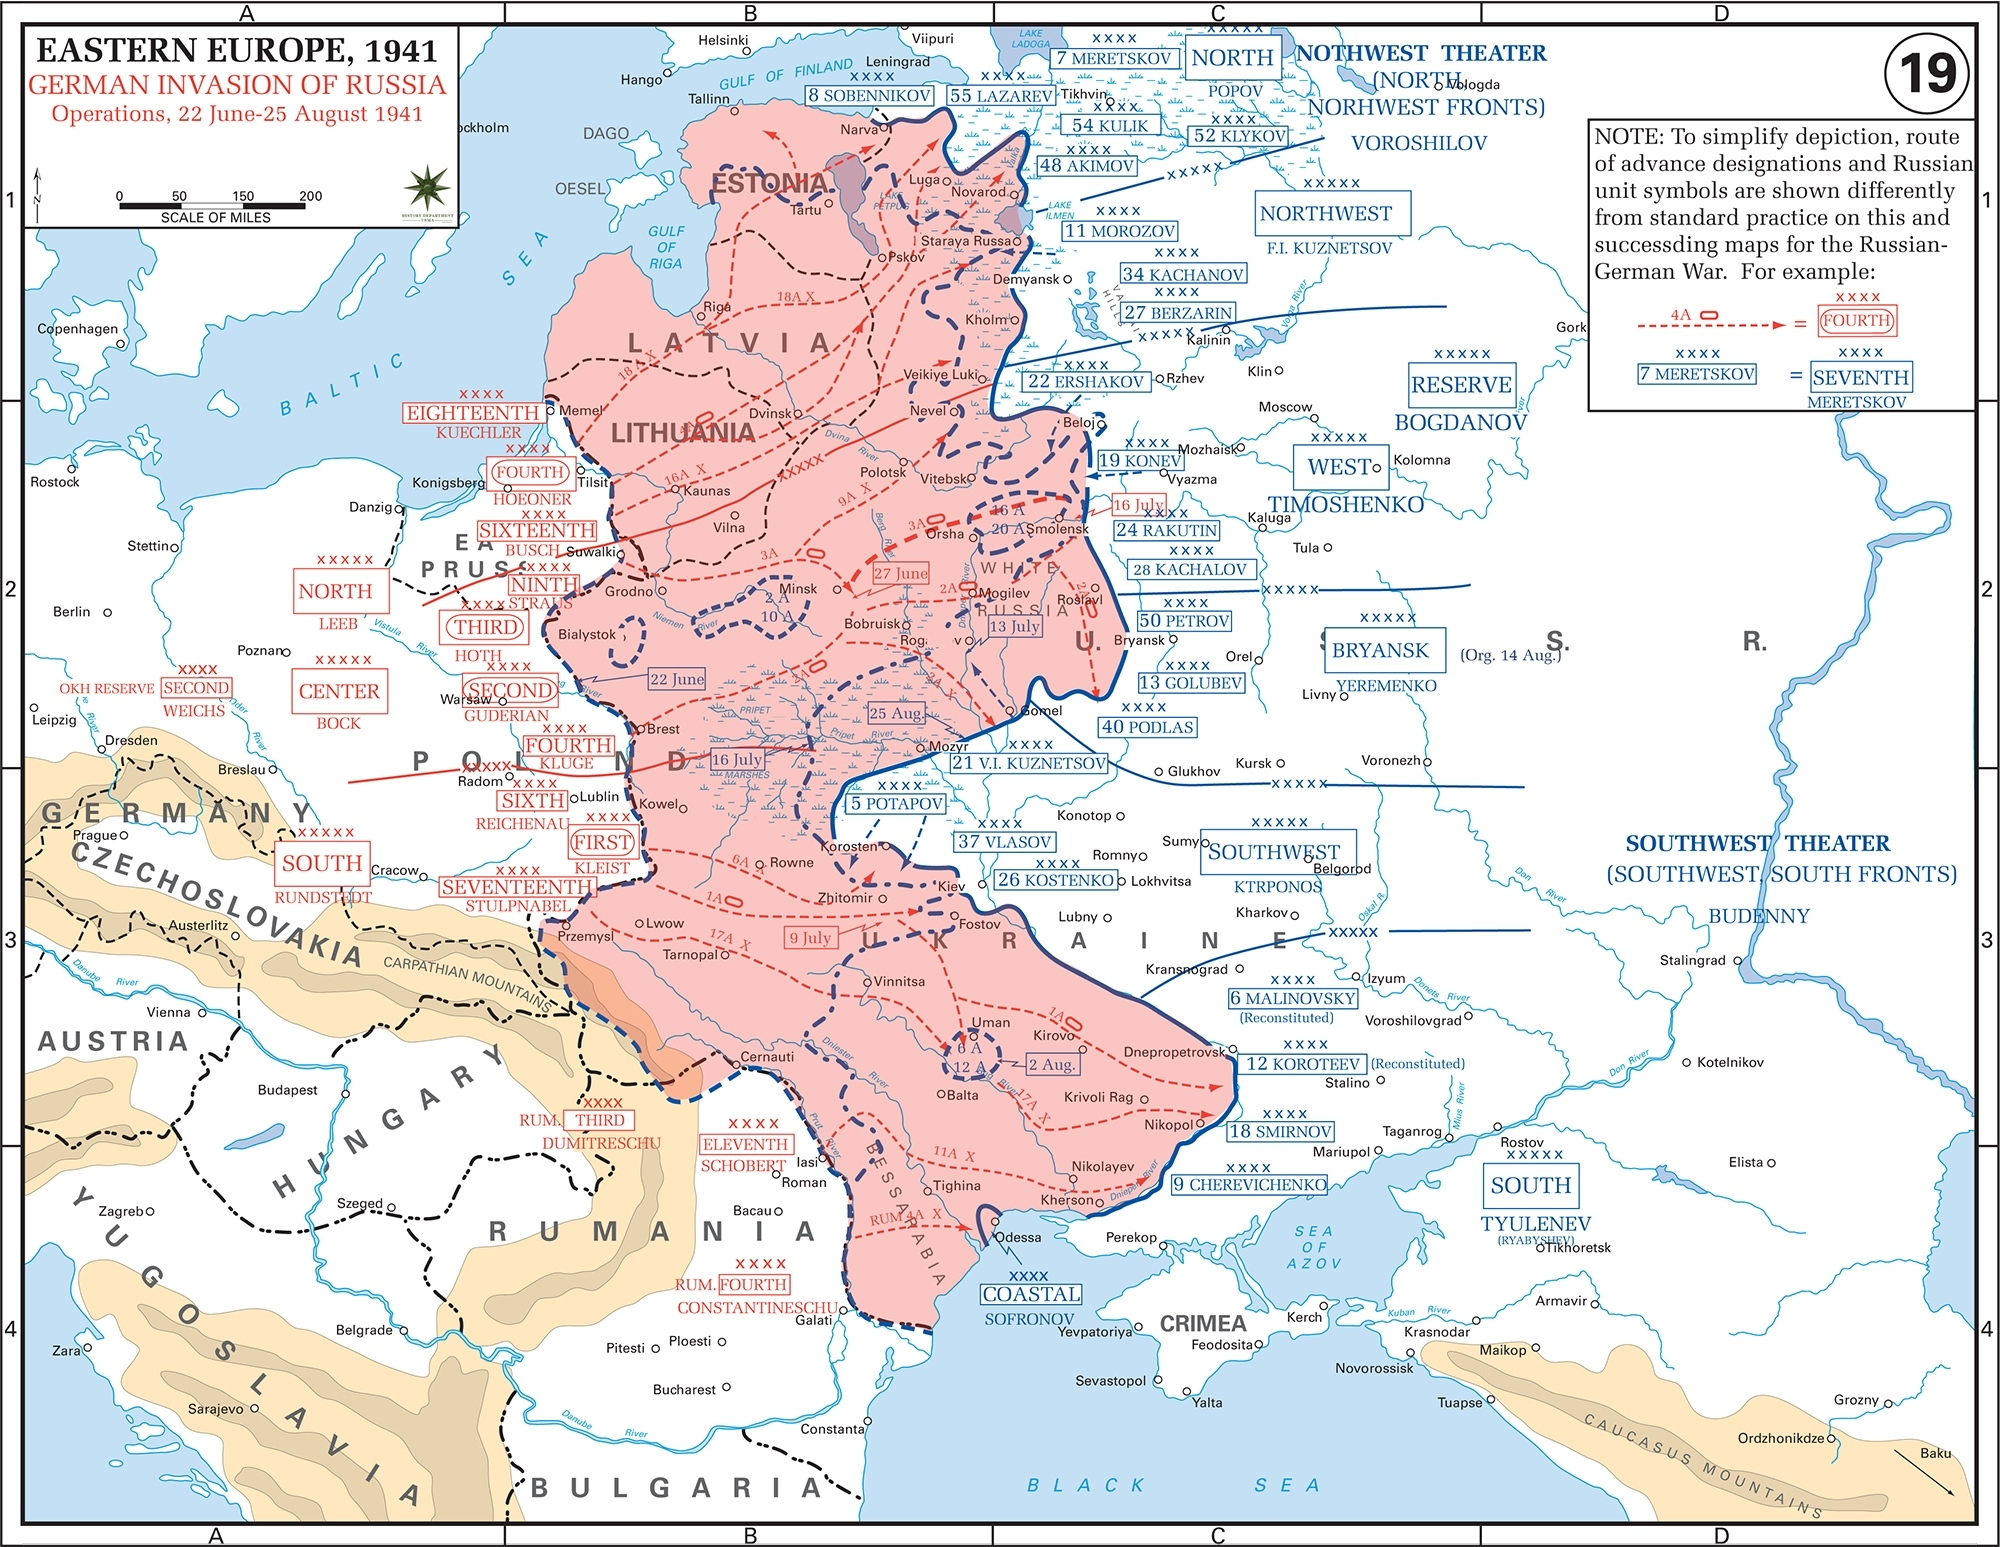 Map Of Wwii: Russia June-August 1941 throughout Map Of German Invasion Ww2